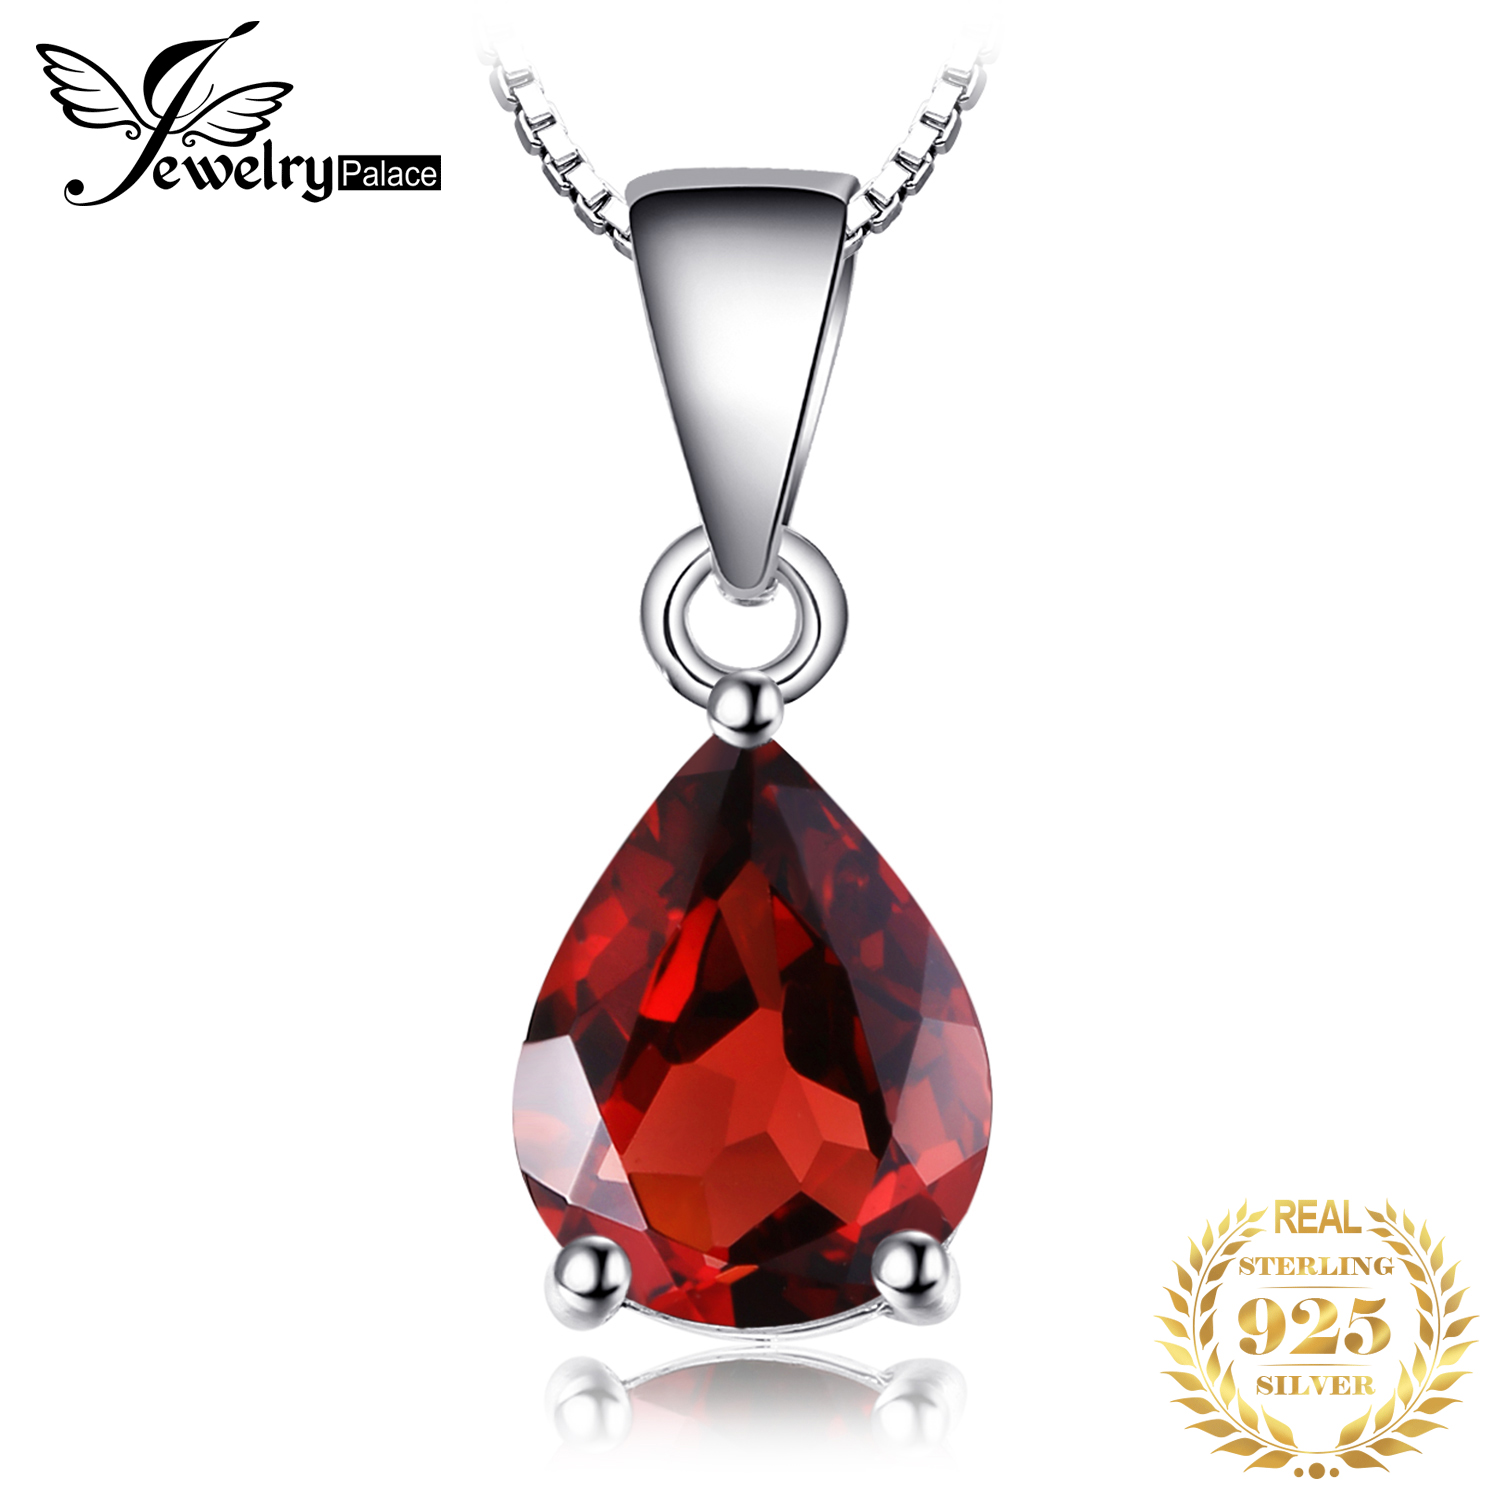 Jewelry Accessories Key Chain Bracelet Necklace Pendants Ruby Three Piece Solitaire Earring Pendant 925 Sterling Silver Set